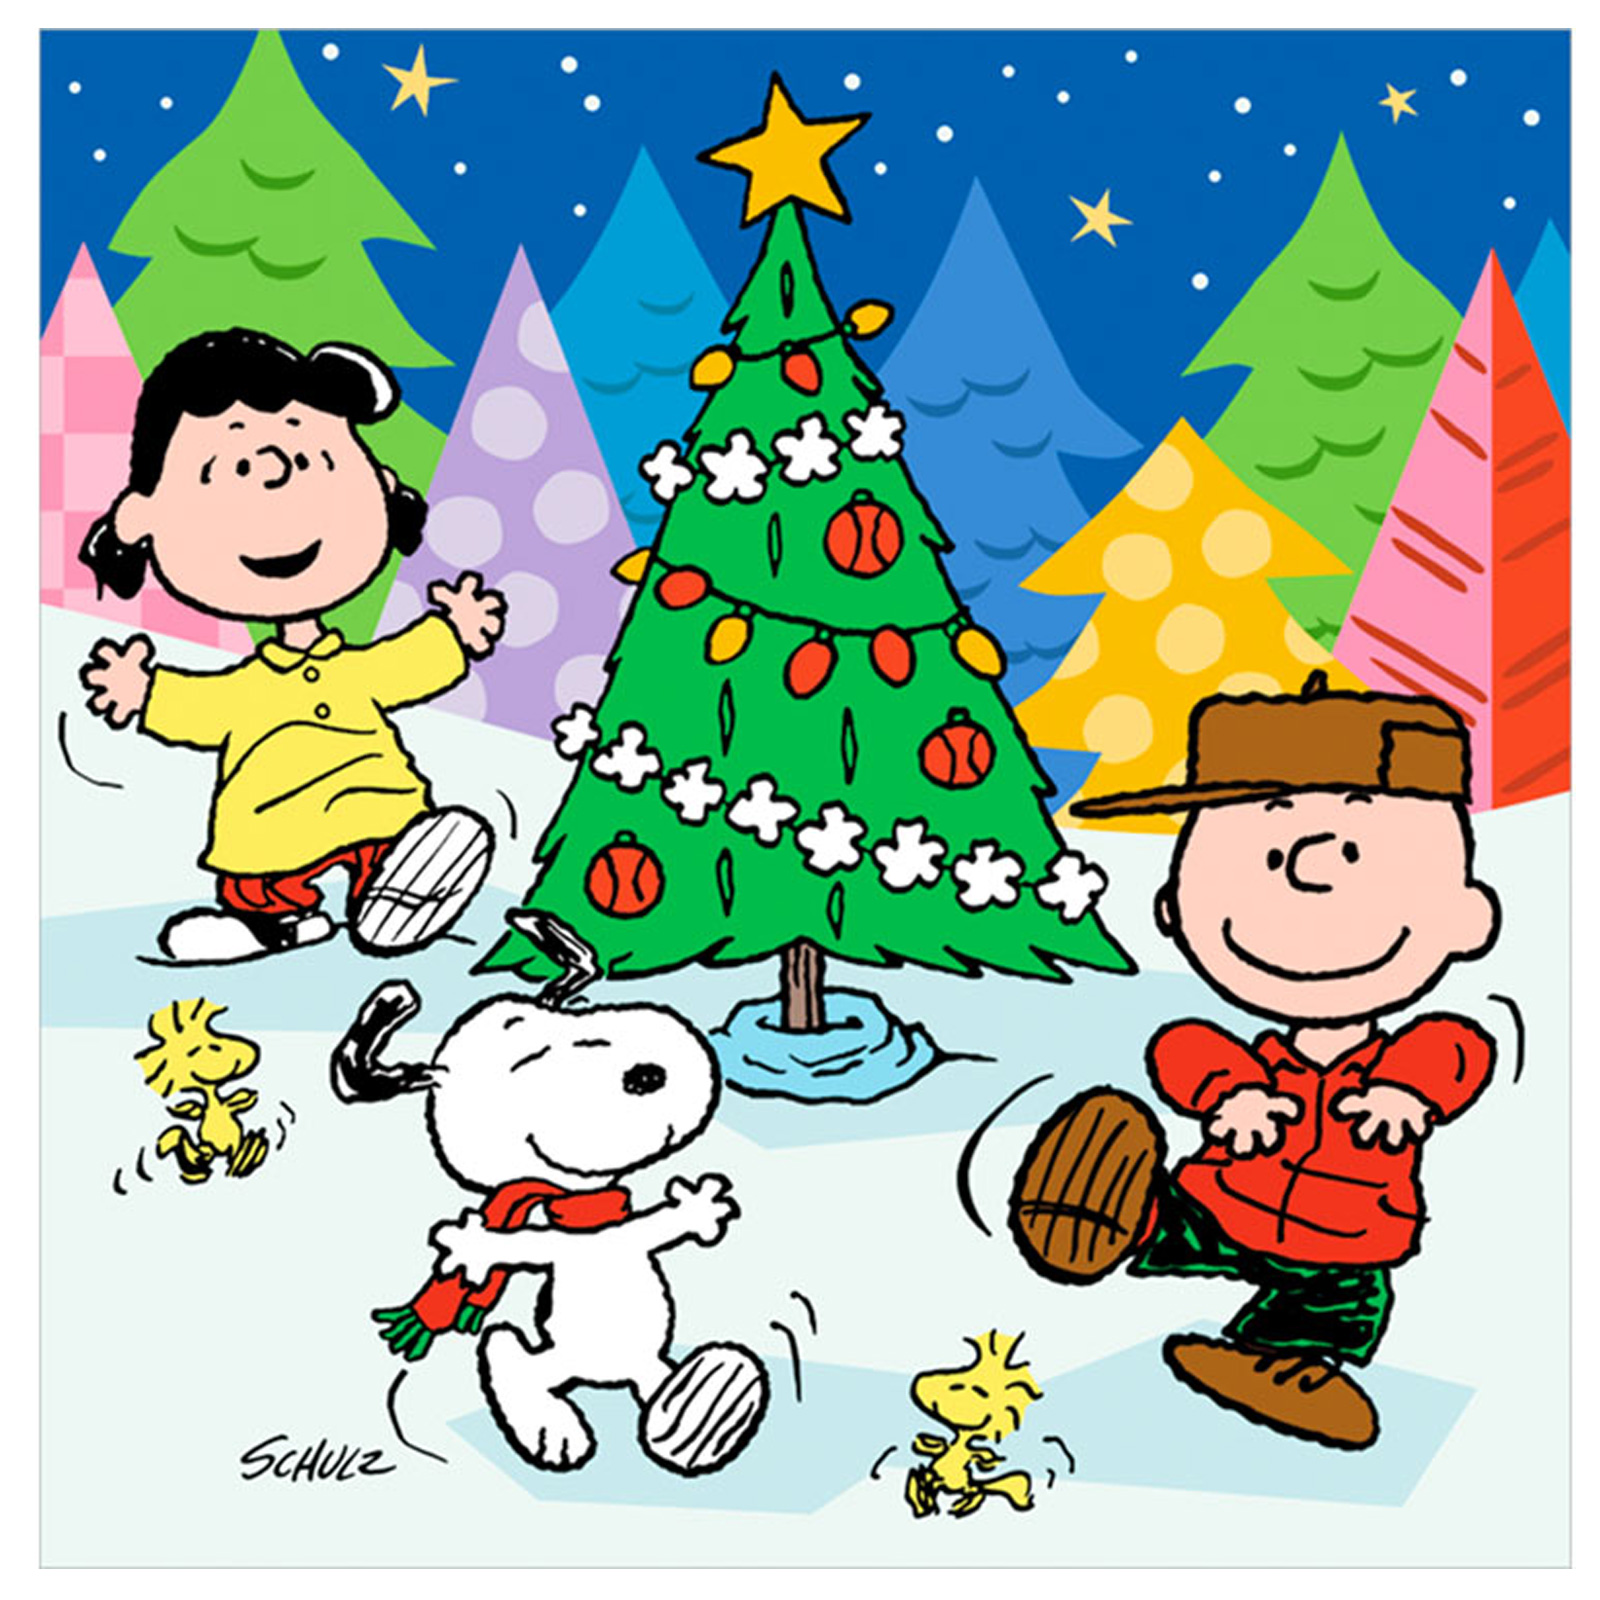 CHARLIE BROWN peanuts comics snoopy christmas by wallpaperupcom 1600x1600